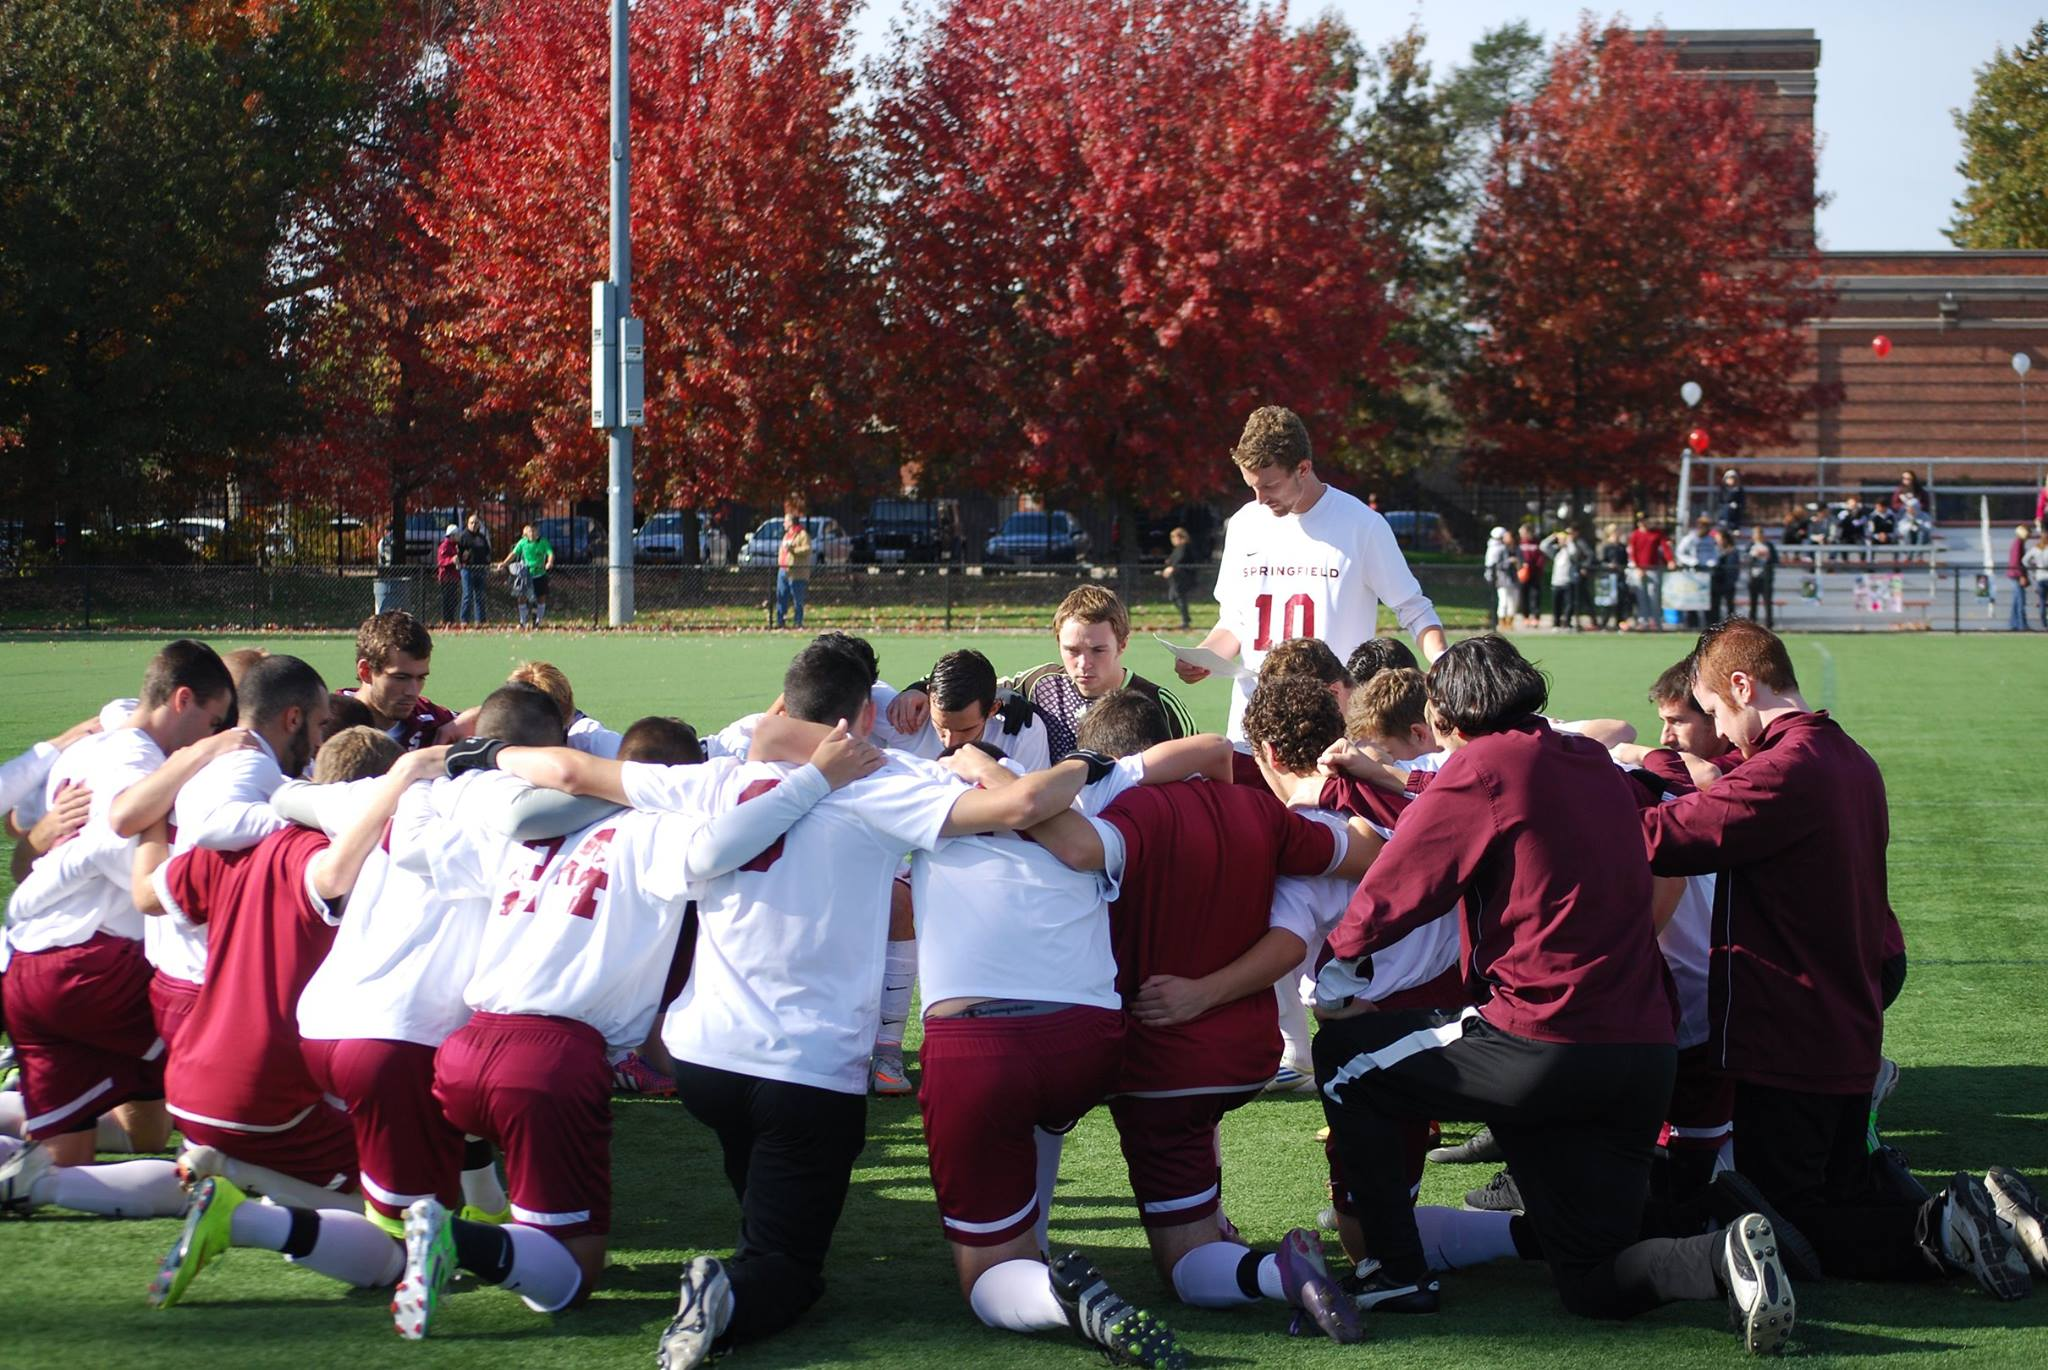 Springfield College soccer team